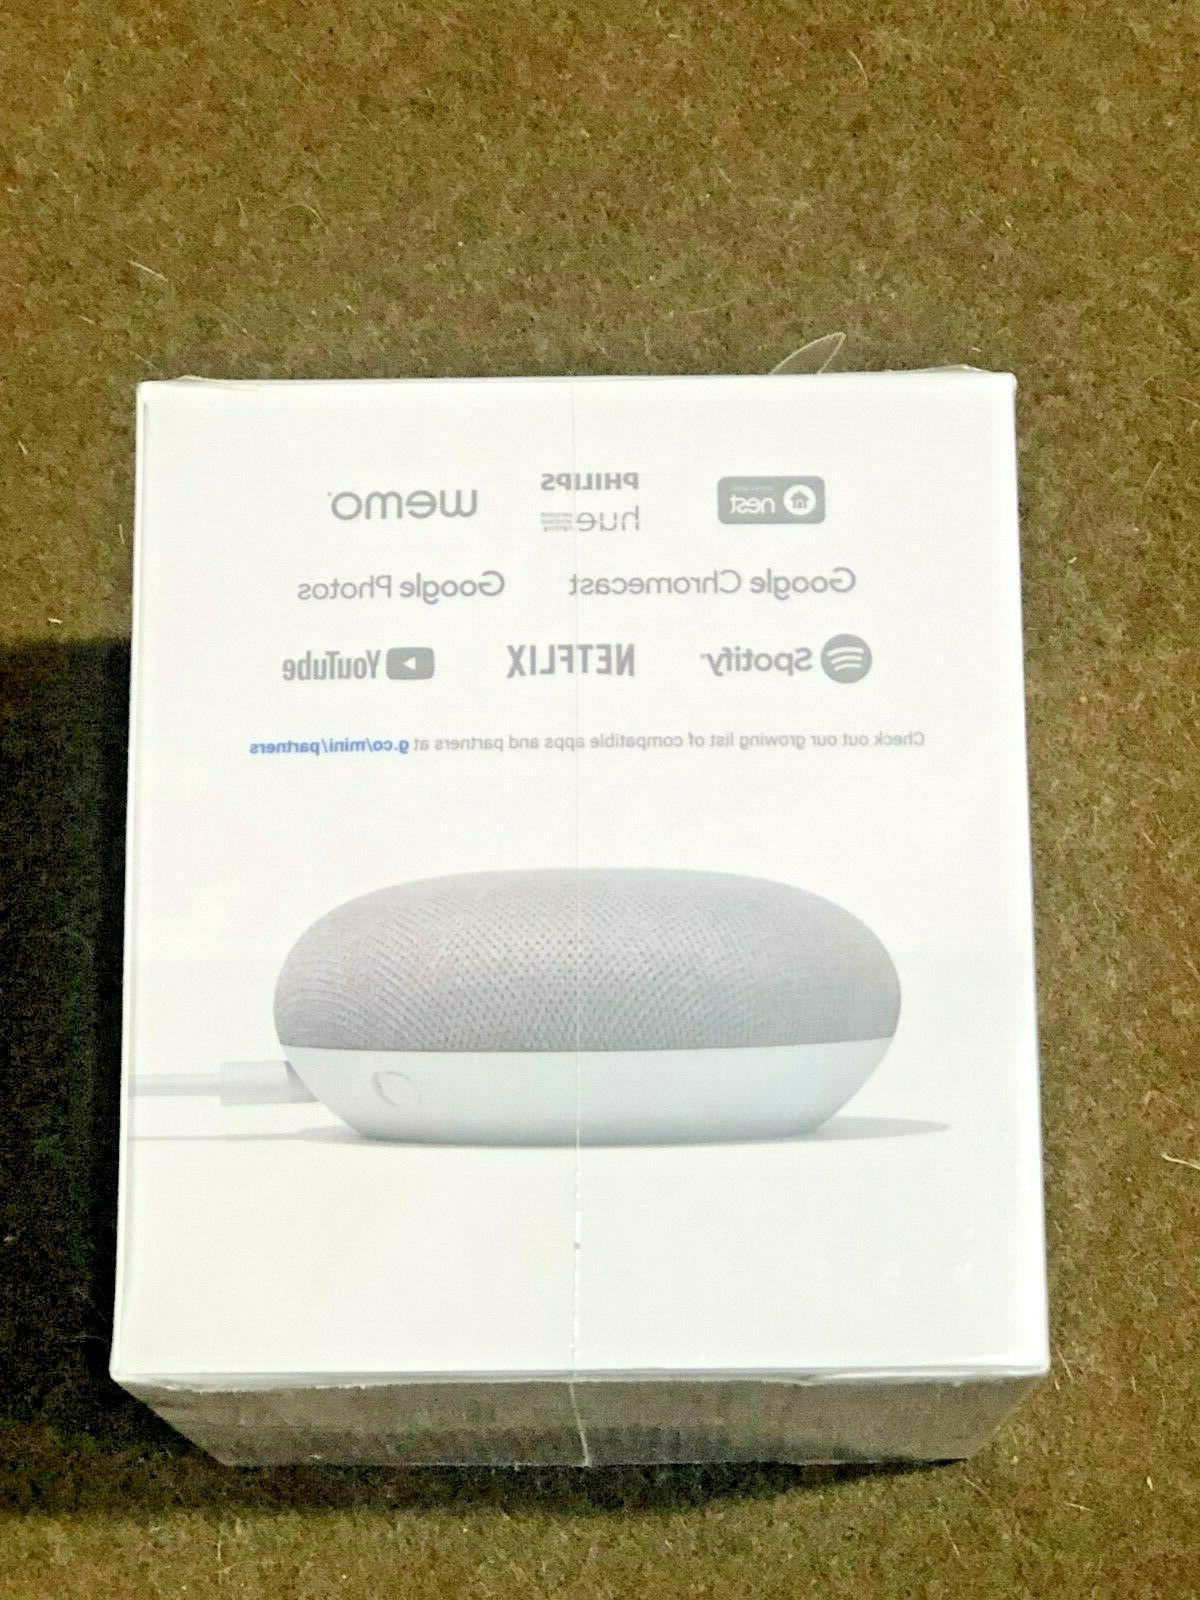 NEW GOOGLE HOME GOOGLE ASSISTANT DEVICE